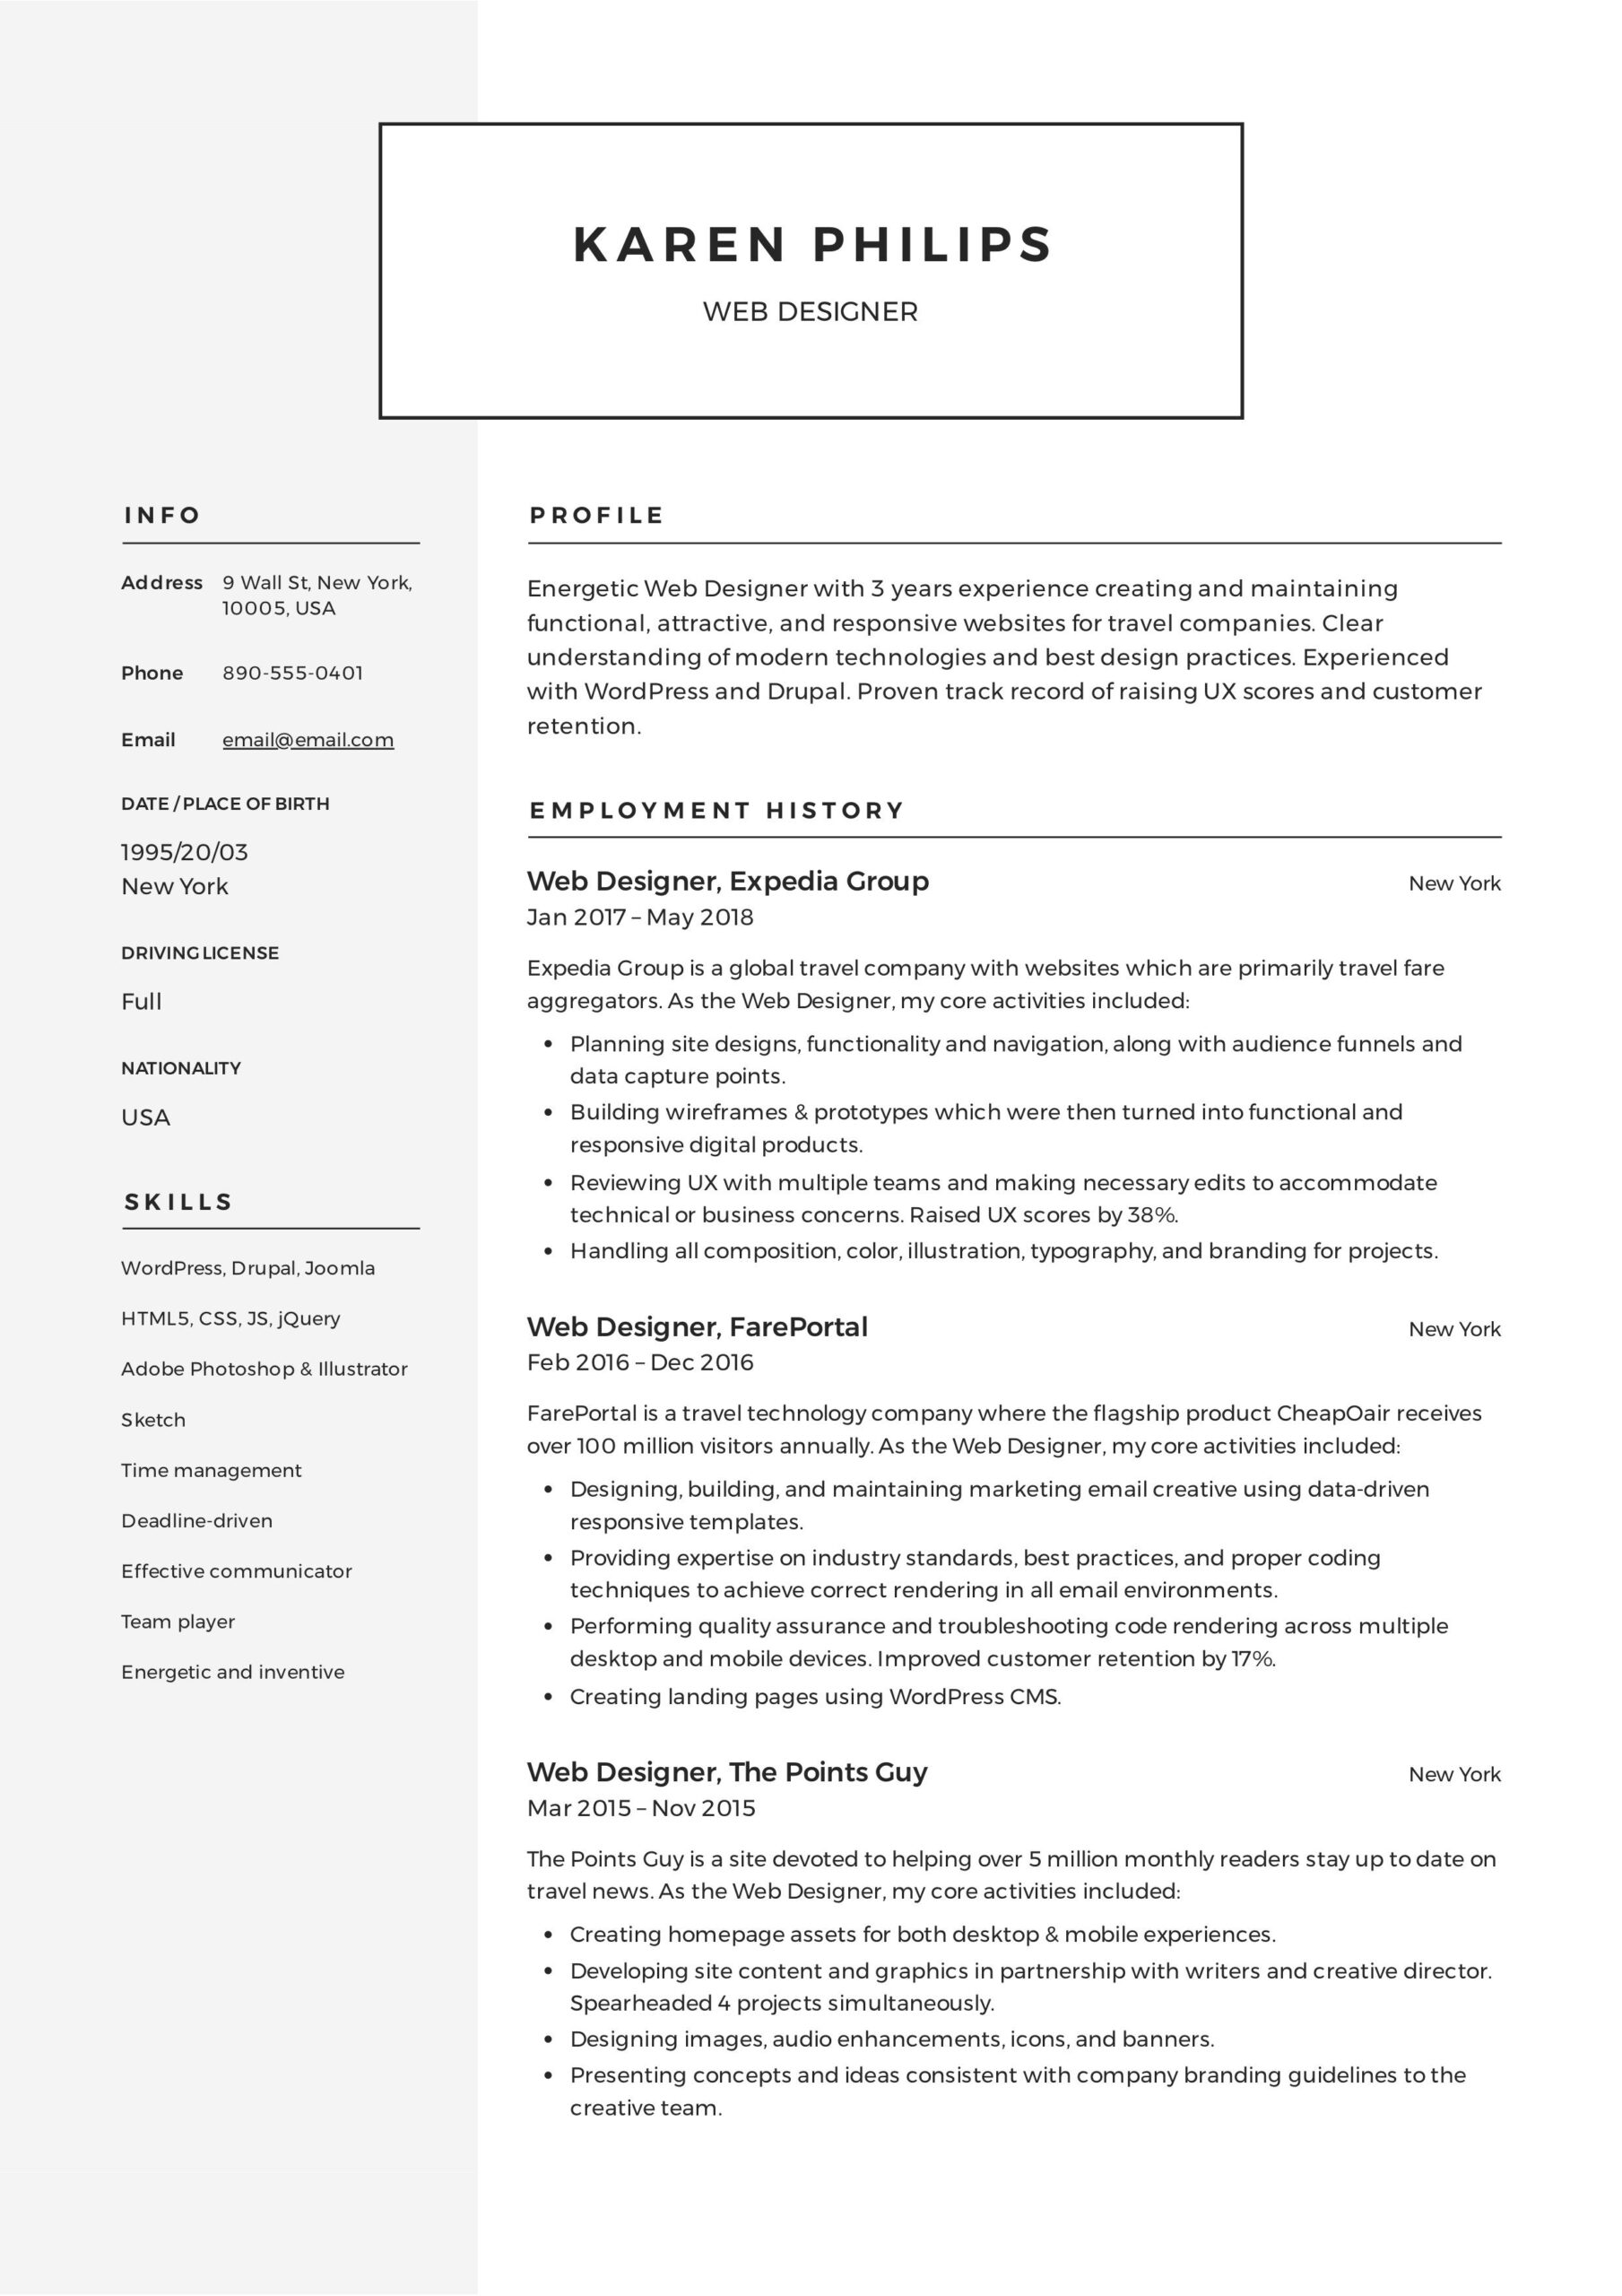 web designer resume example examples template free format headline tips for references Resume Web Designer Resume Format Free Download